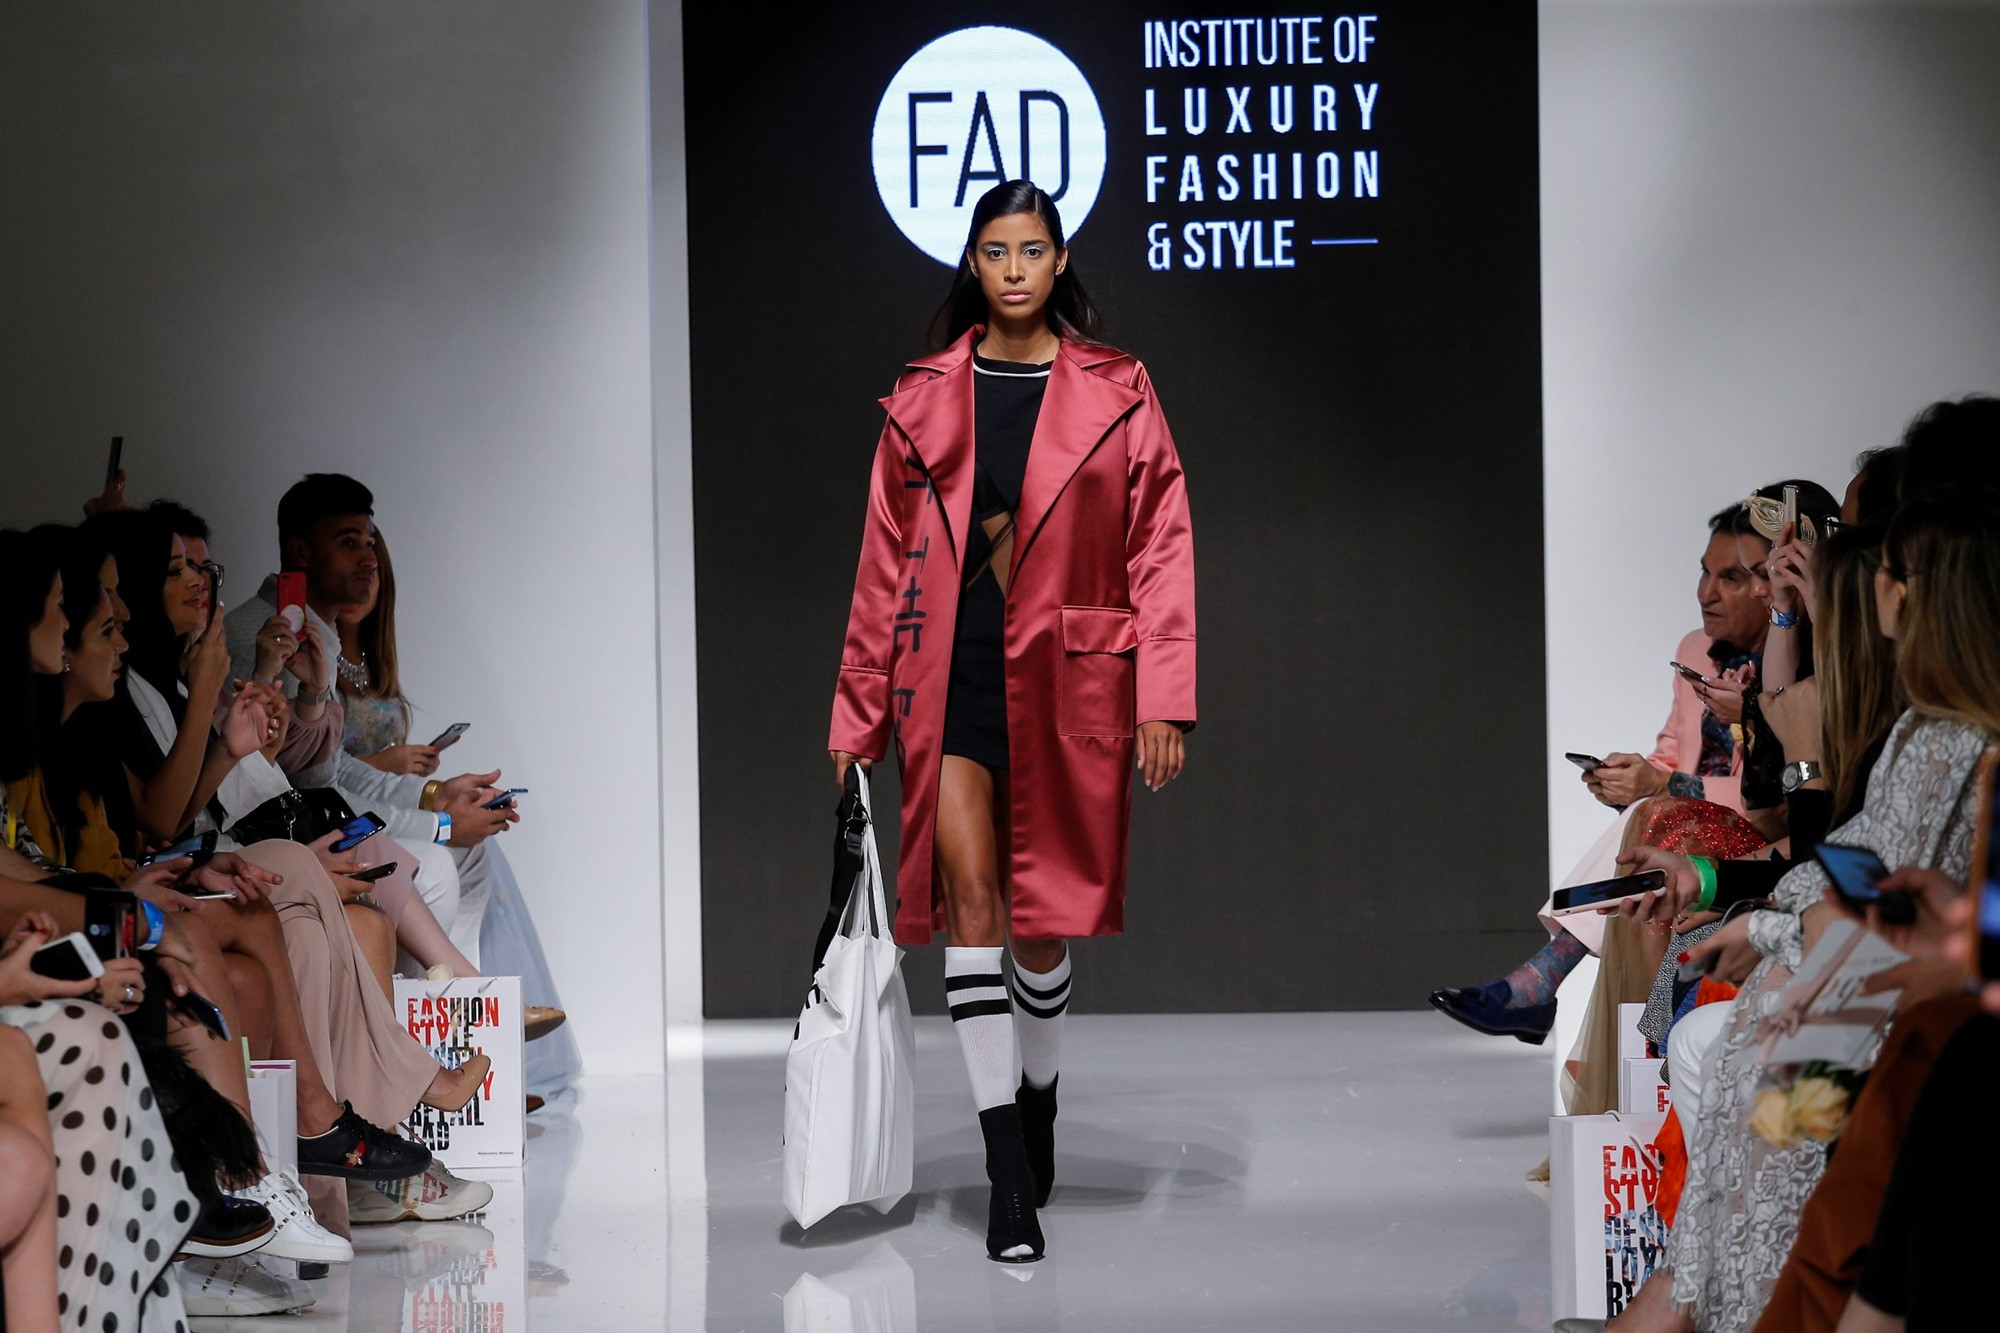 Fad Institute Of Luxury Fashion Amp Style Mission Statement Employees And Hiring Linkedin